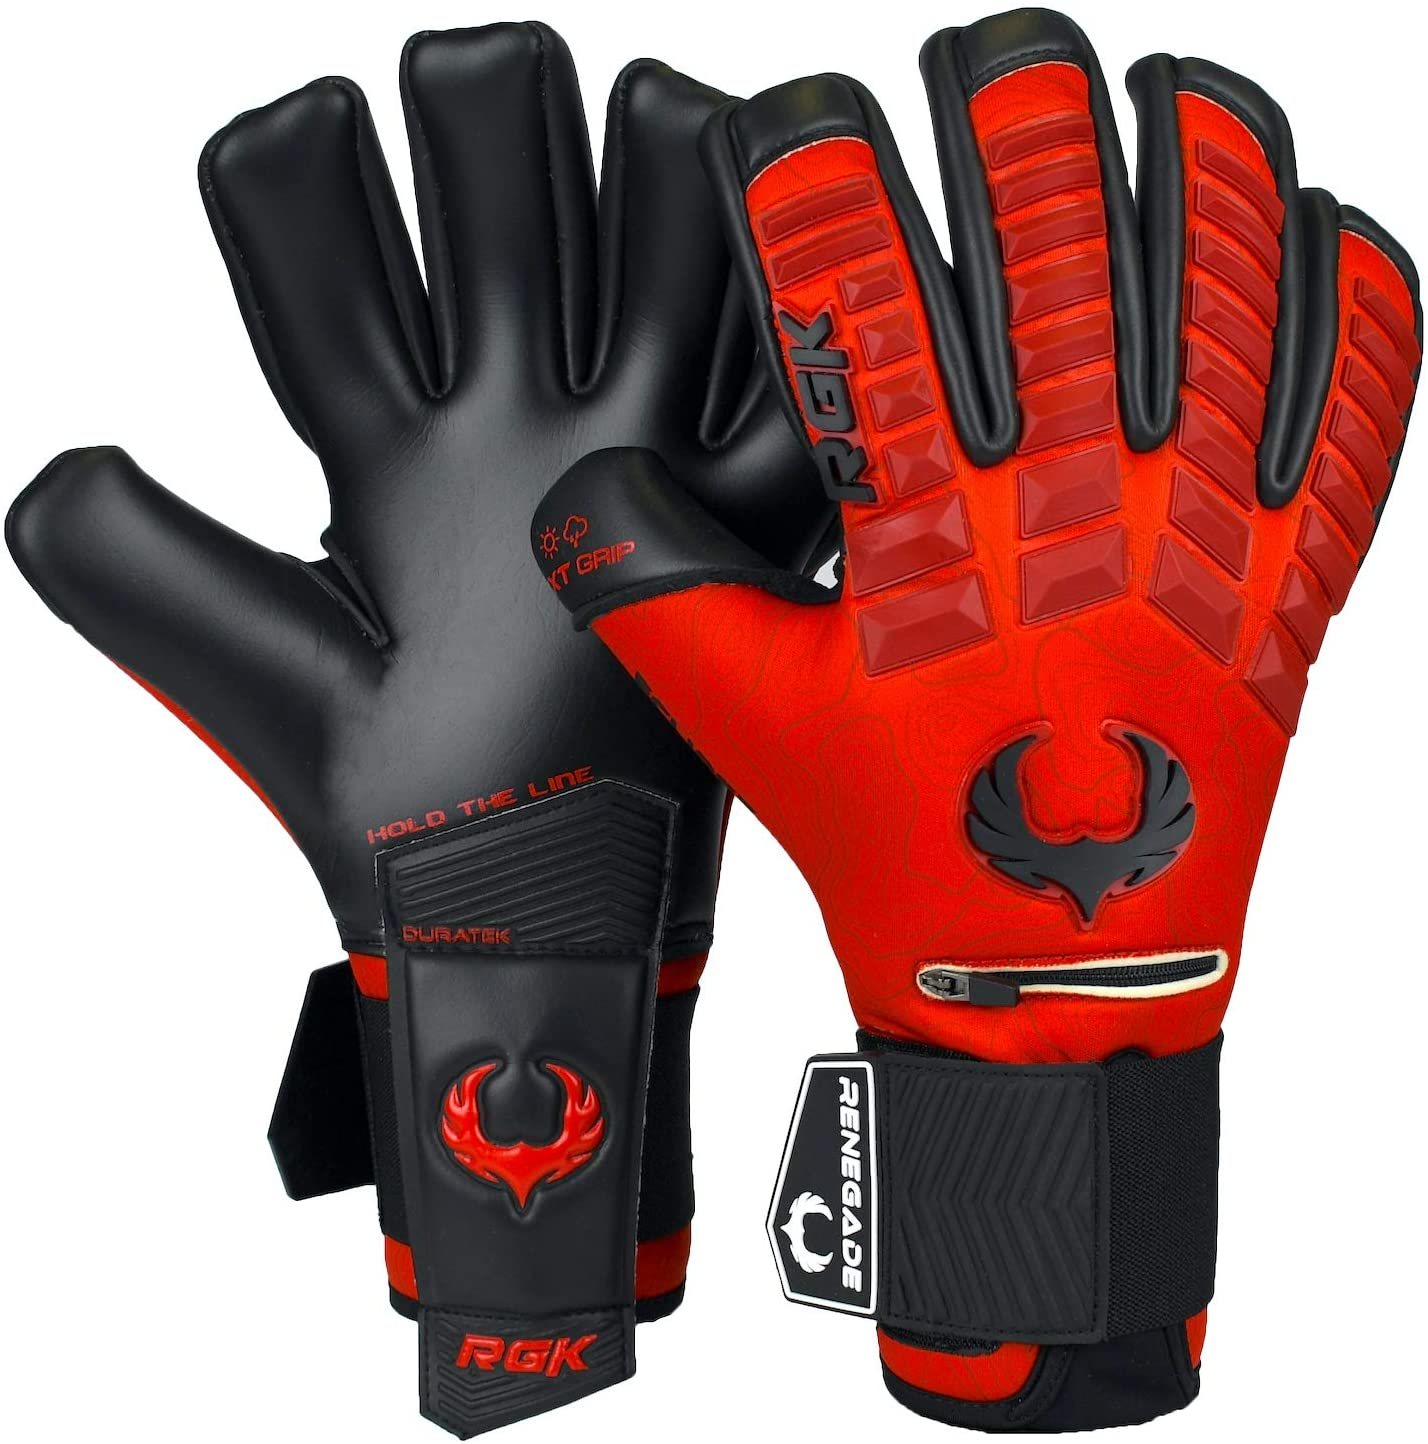 Renegade GK Eclipse Professional Soccer Goalie Gloves with Microbe-Guard (Sizes 7-12, Level 5) Pro-Tek Fingersaves & 4+3MM EXT Contact Grip | Goalkeeper Gloves for Elite Play | Based in The USA : Sports & Outdoors